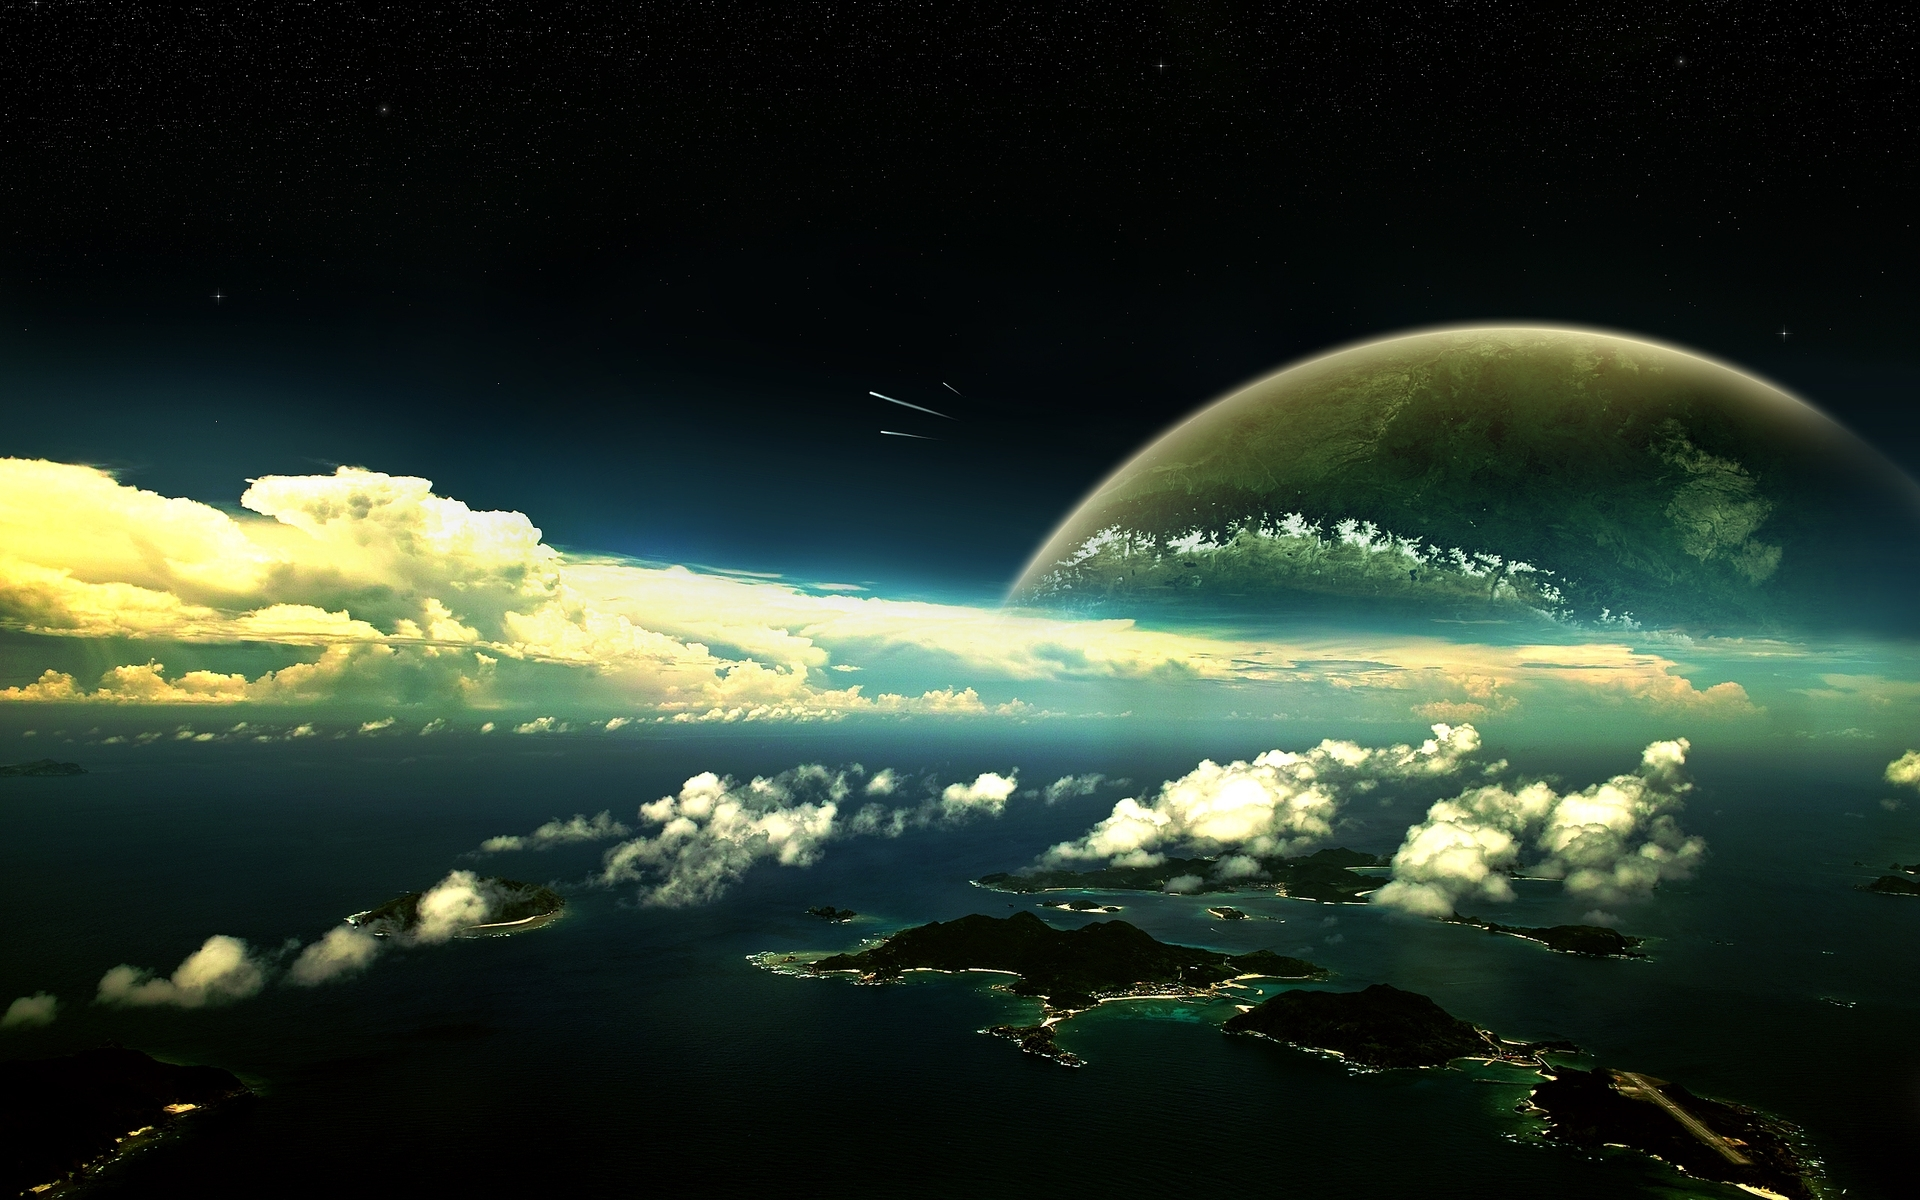 40704 download wallpaper Landscape, Planets screensavers and pictures for free